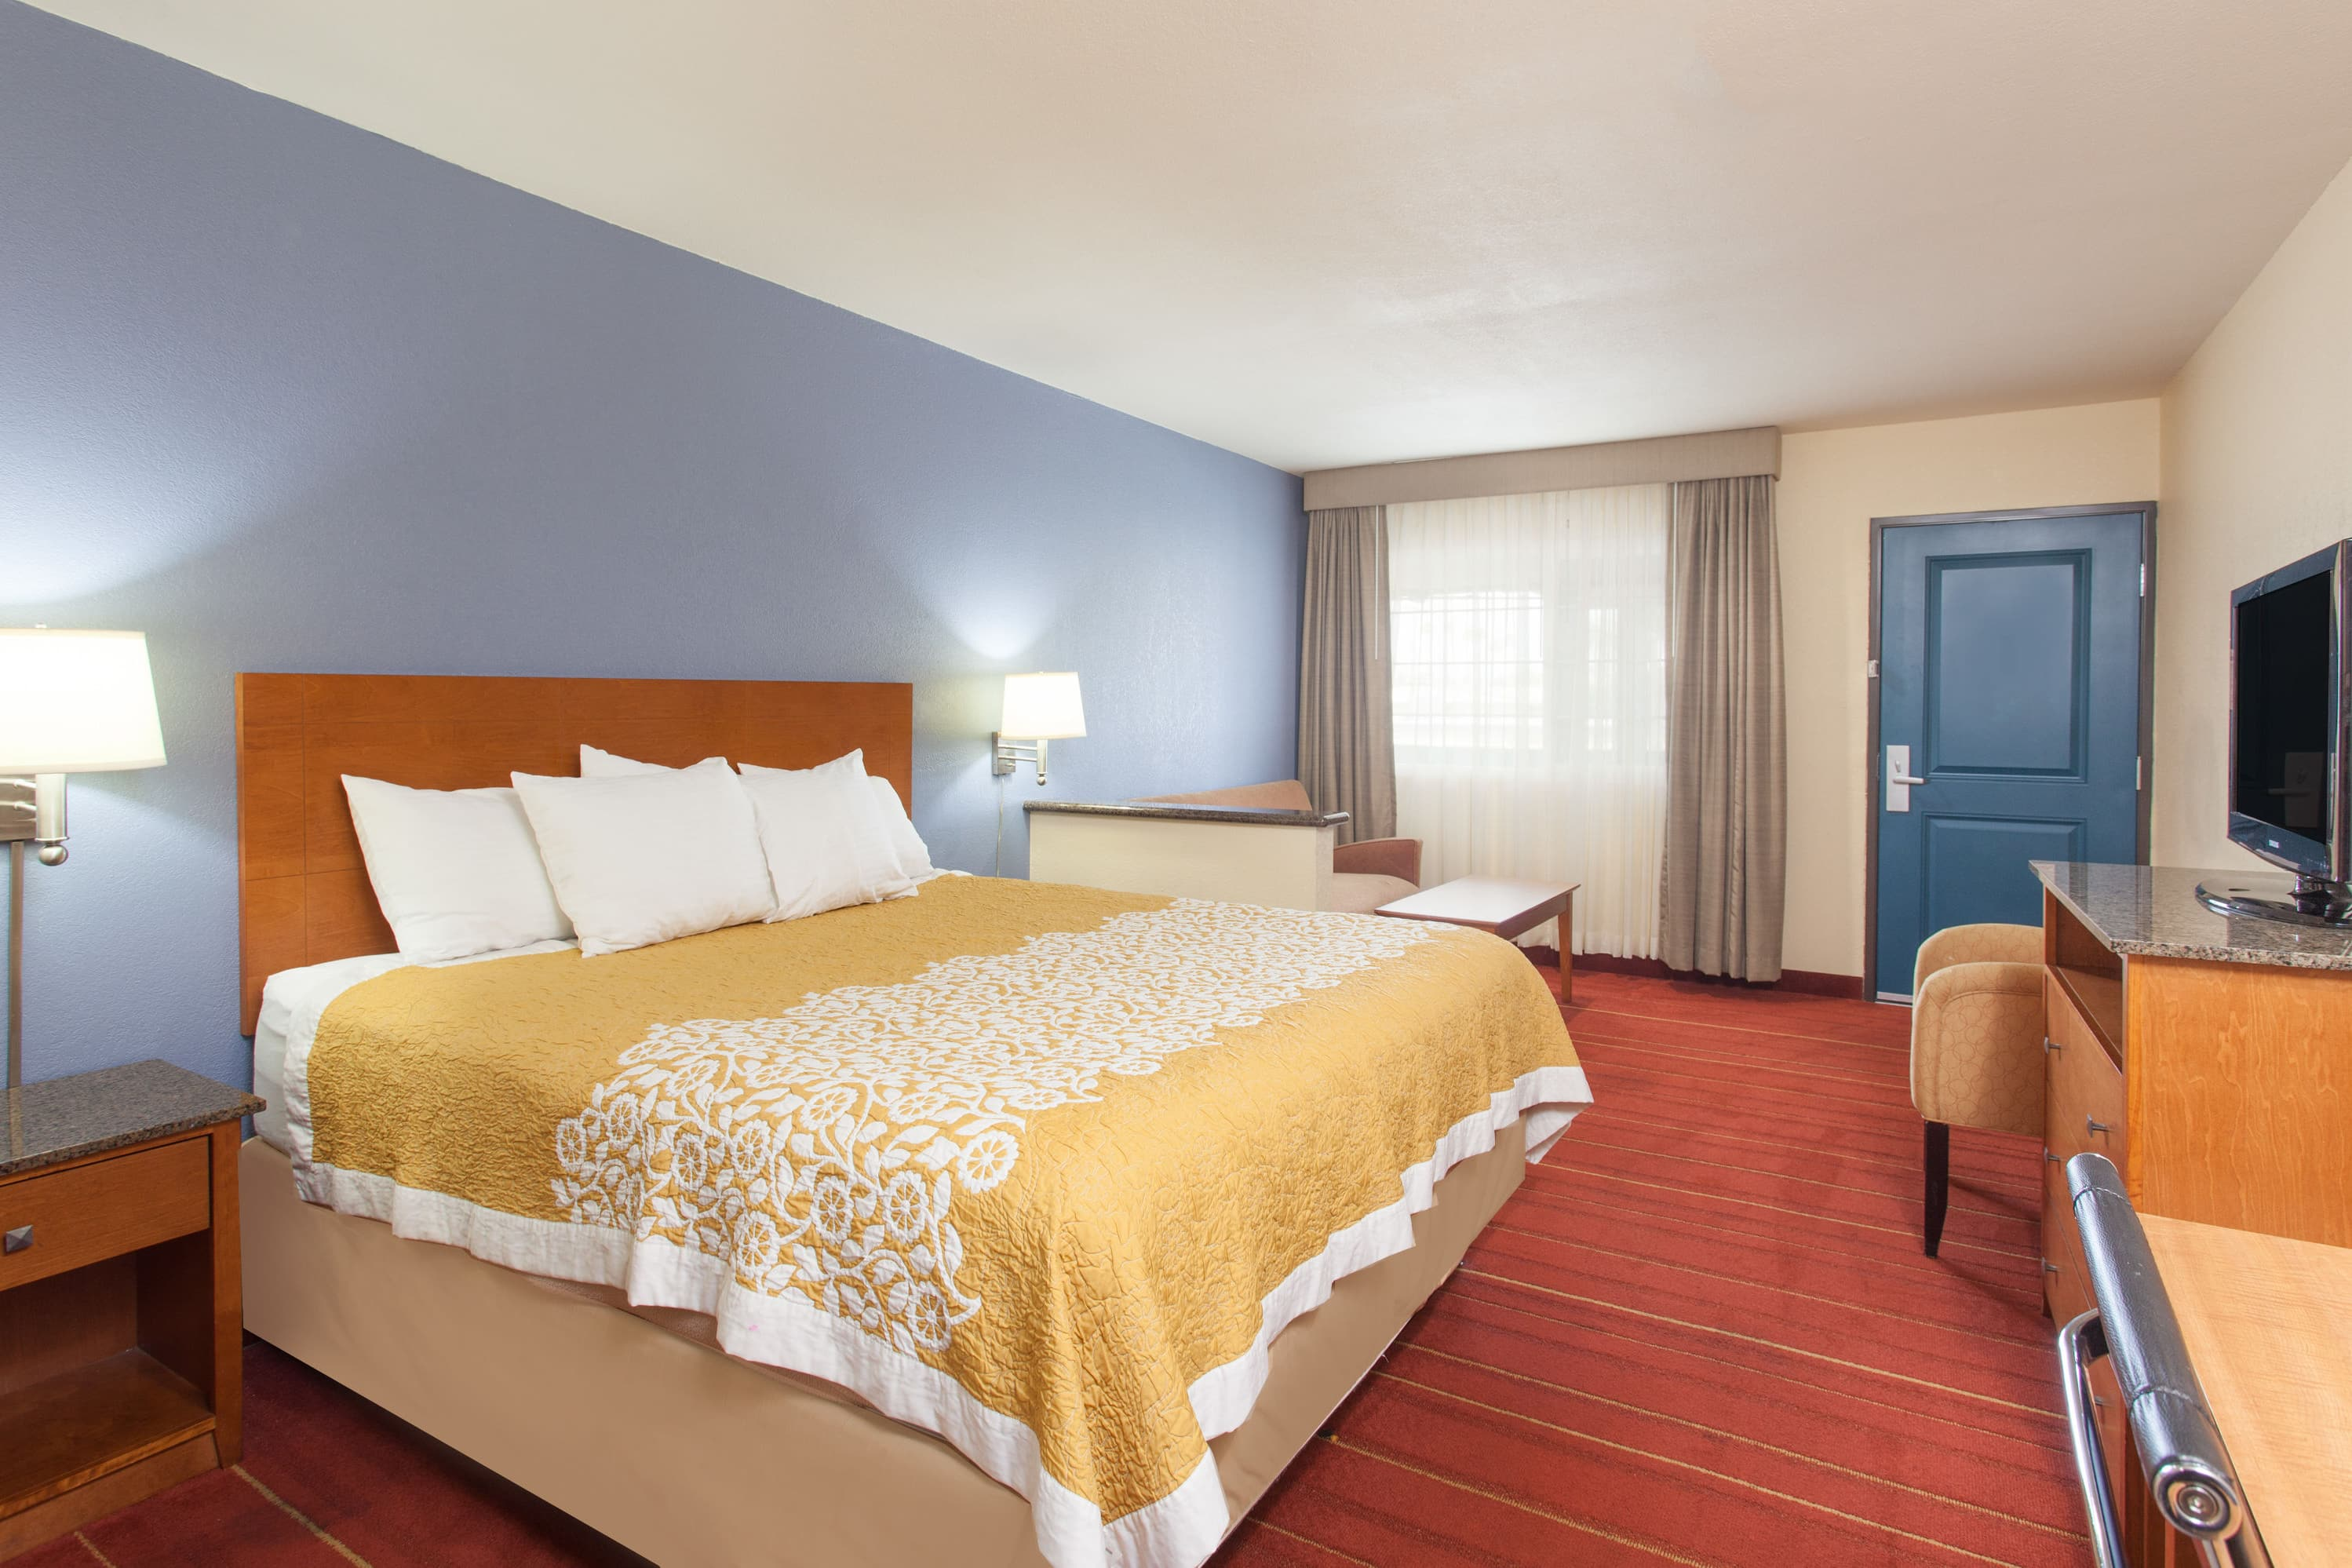 Days Inn San Diego-East/El Cajon suite in El Cajon, California